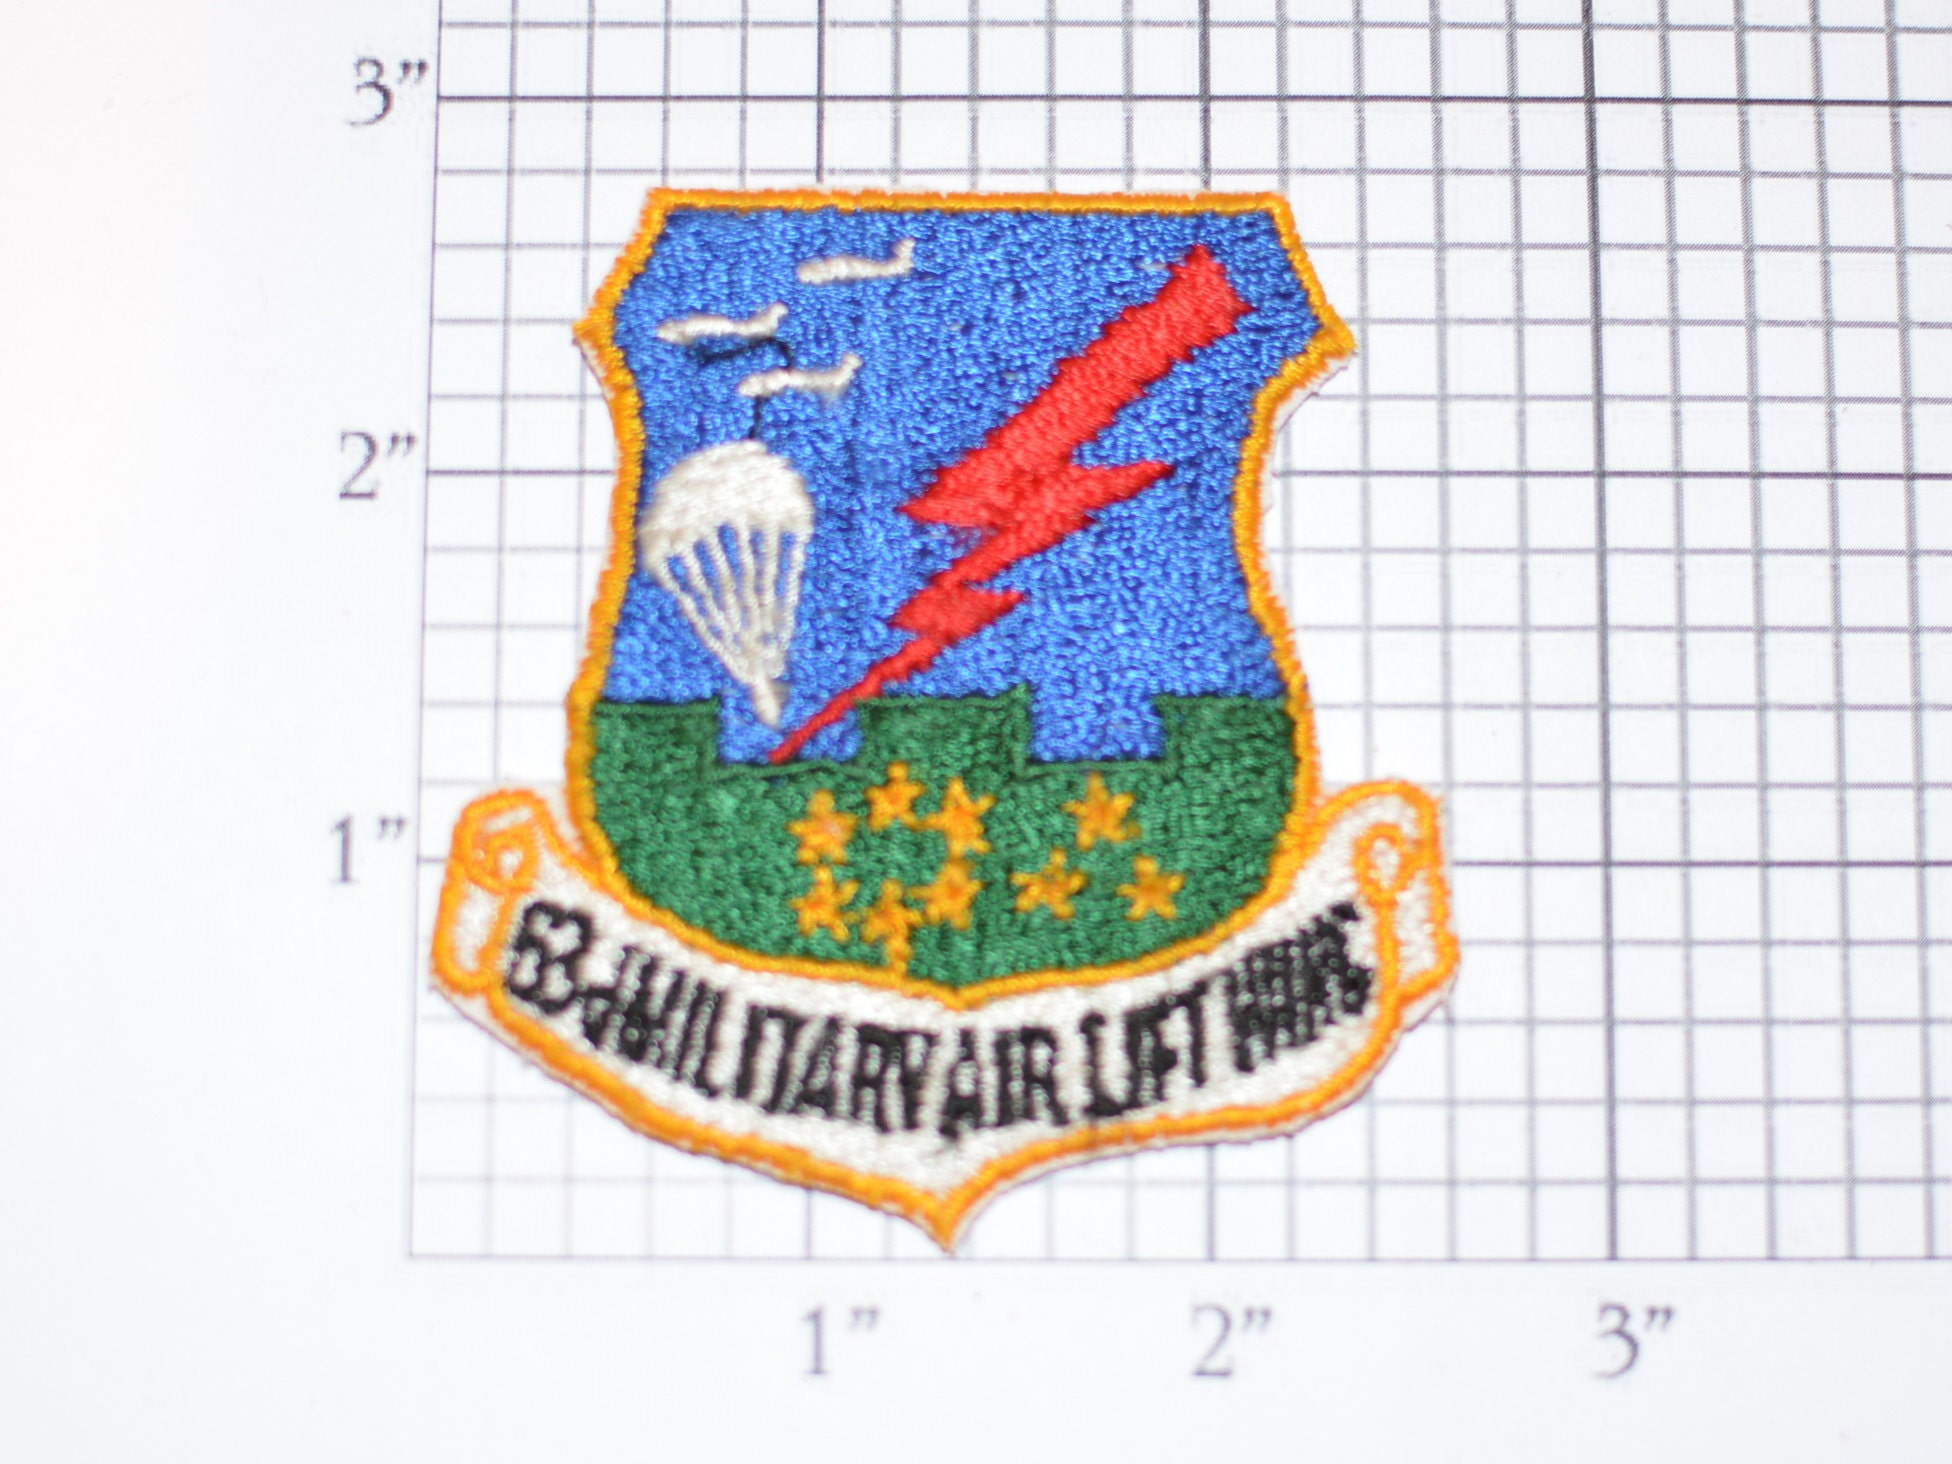 ce277046d4f USAF 63d Military Air Lift Wing Sew-On Vintage Embroidered Patch ...